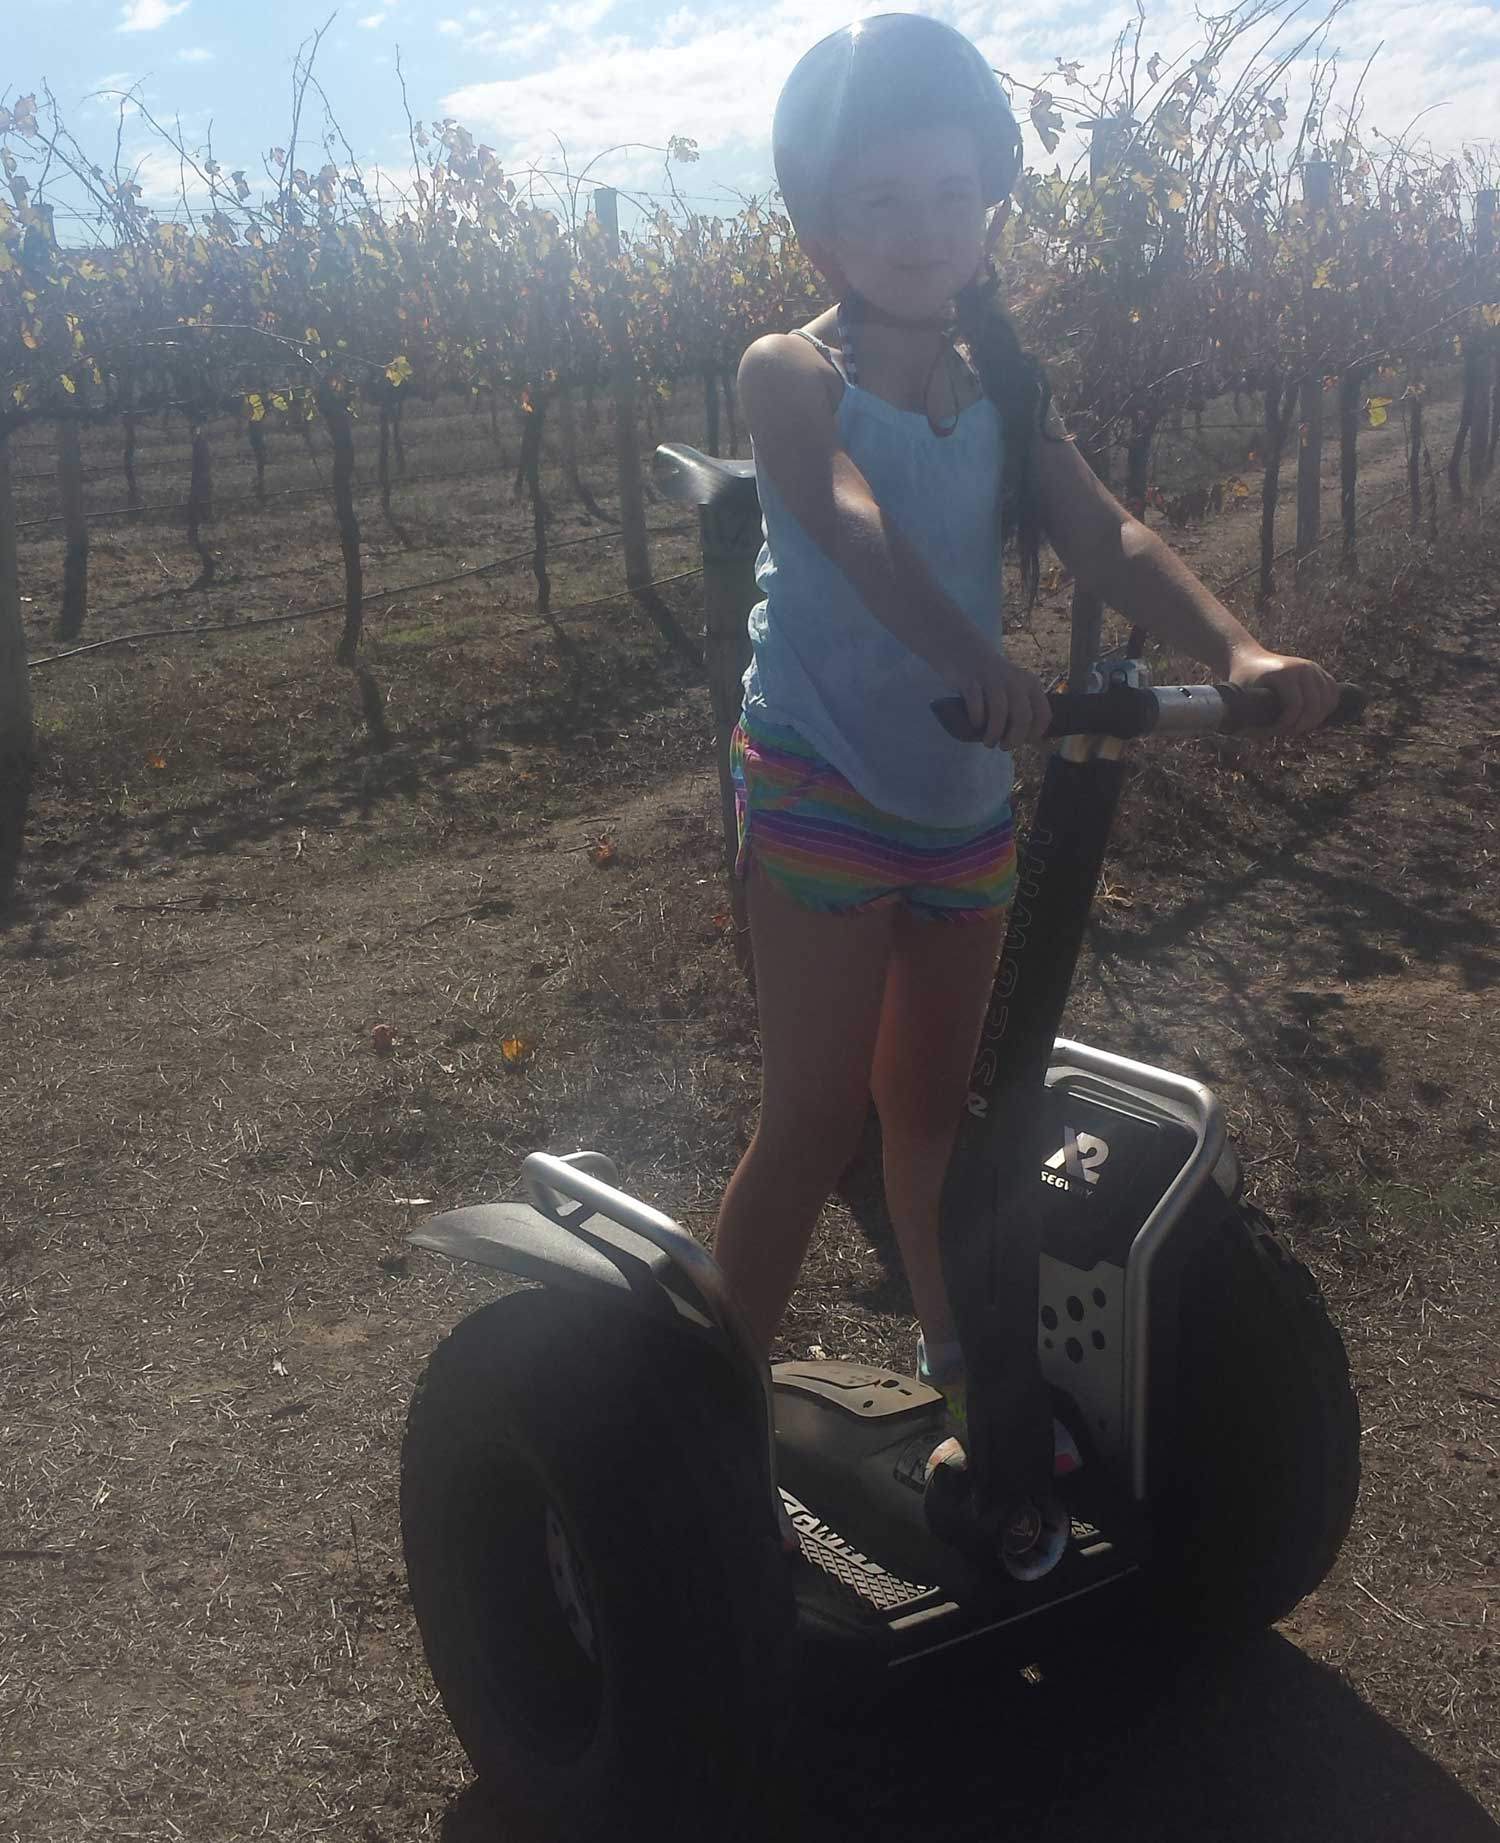 Tookii things to do with kids at Port Lincoln Segways one of the outdoor activities for kids